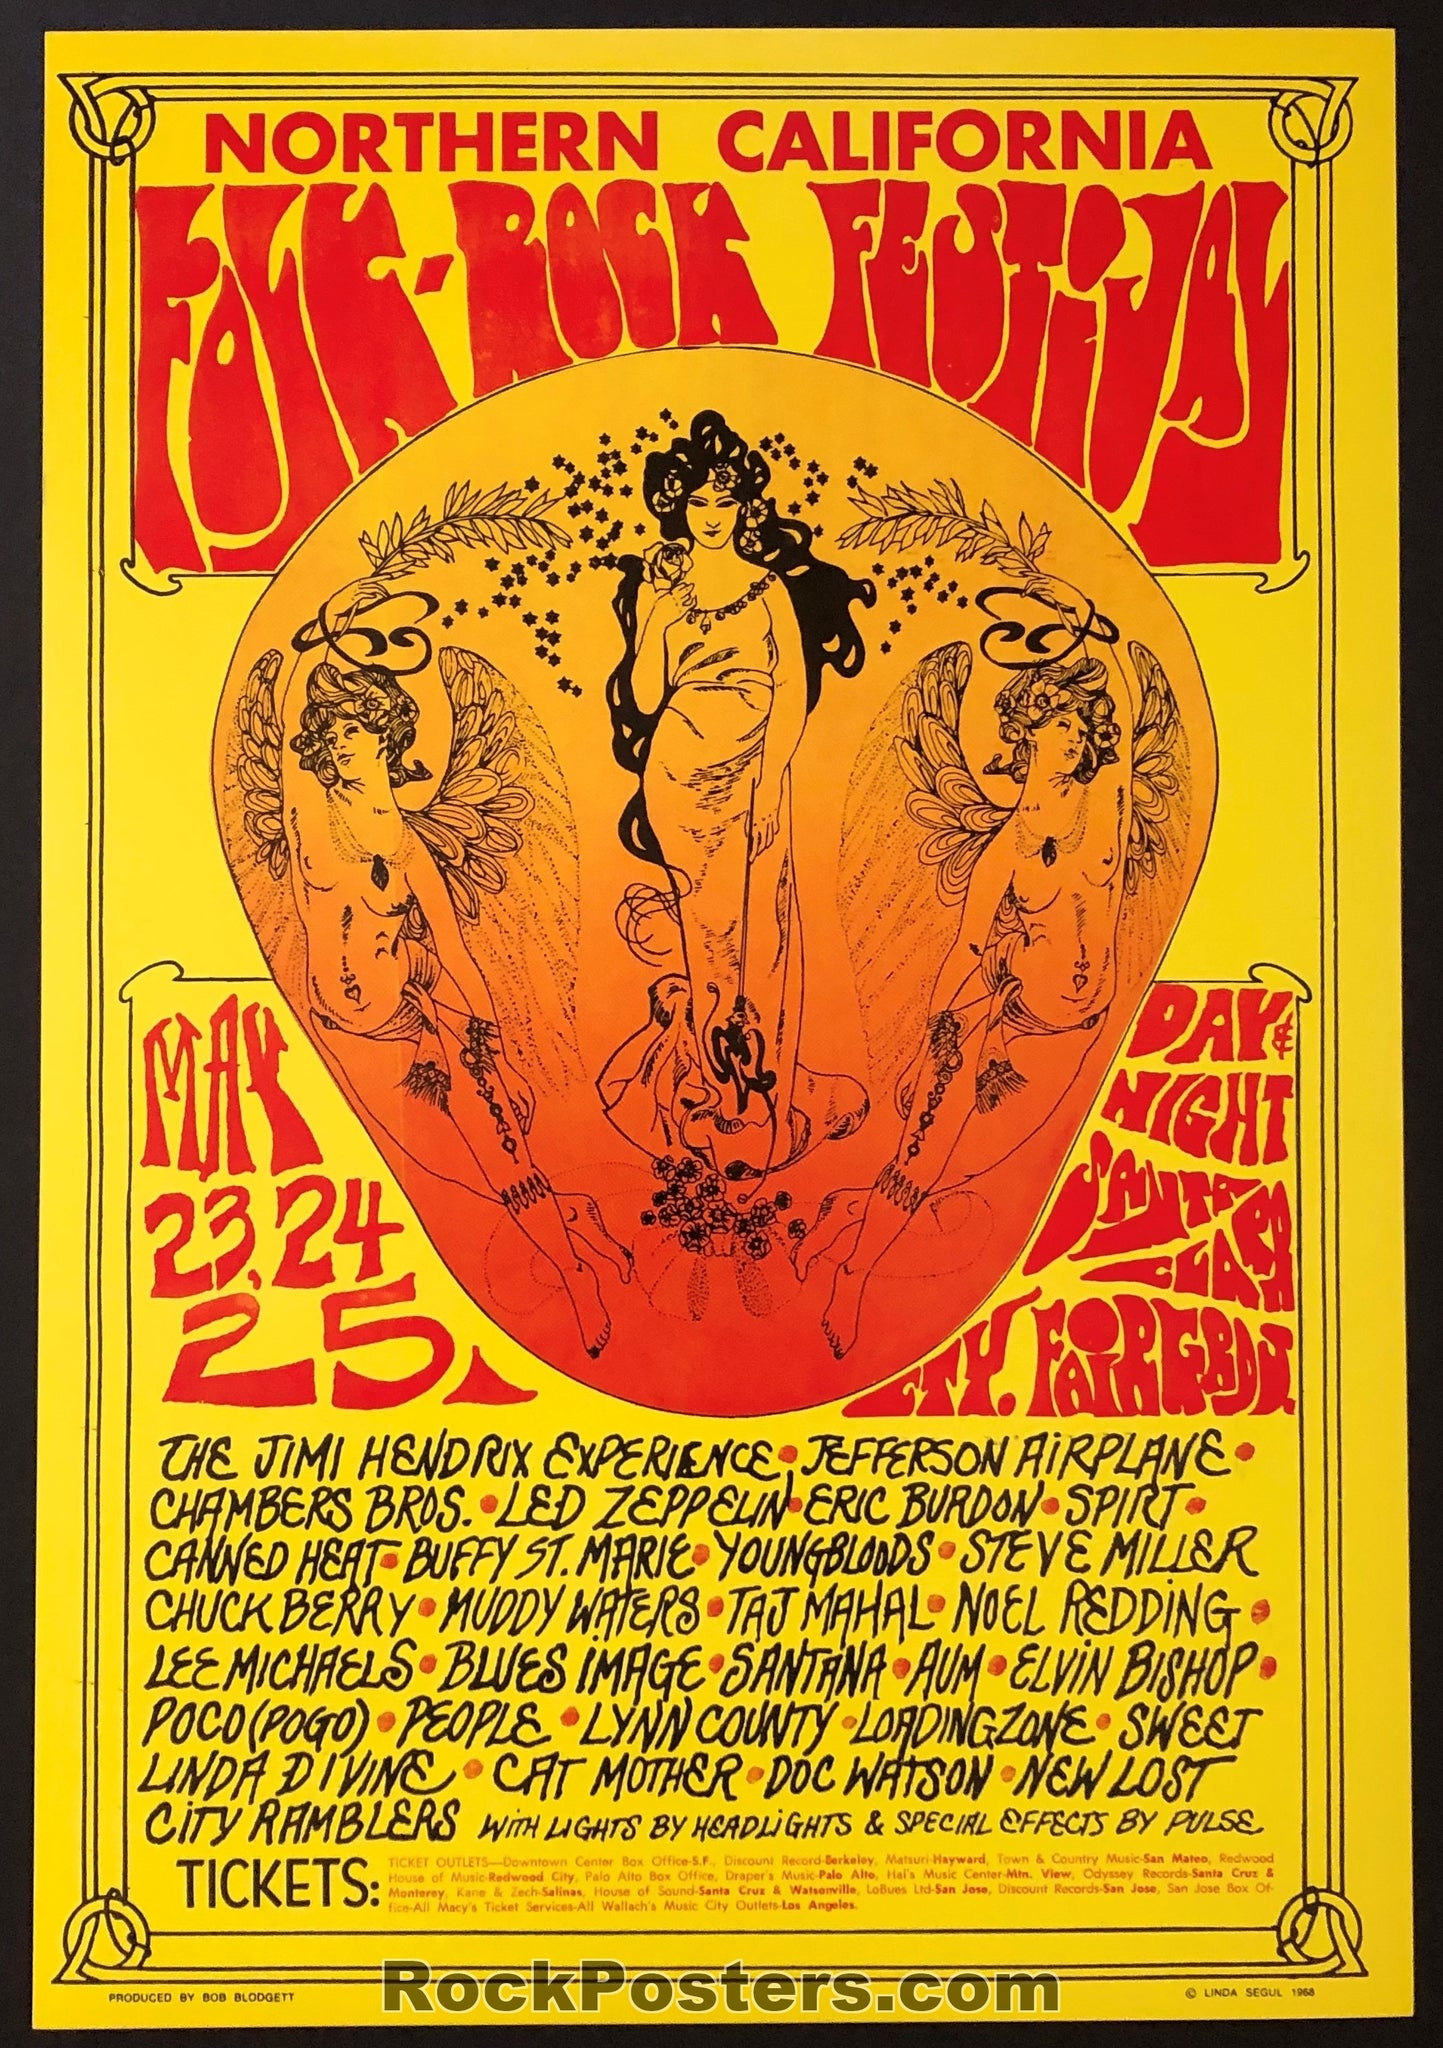 AUCTION - Jimi Hendrix Led Zeppelin 1969 Northern California Folk Rock Festival Fillmore Era Poster  - Santa Clara Fairgrounds - Condition  - Mint